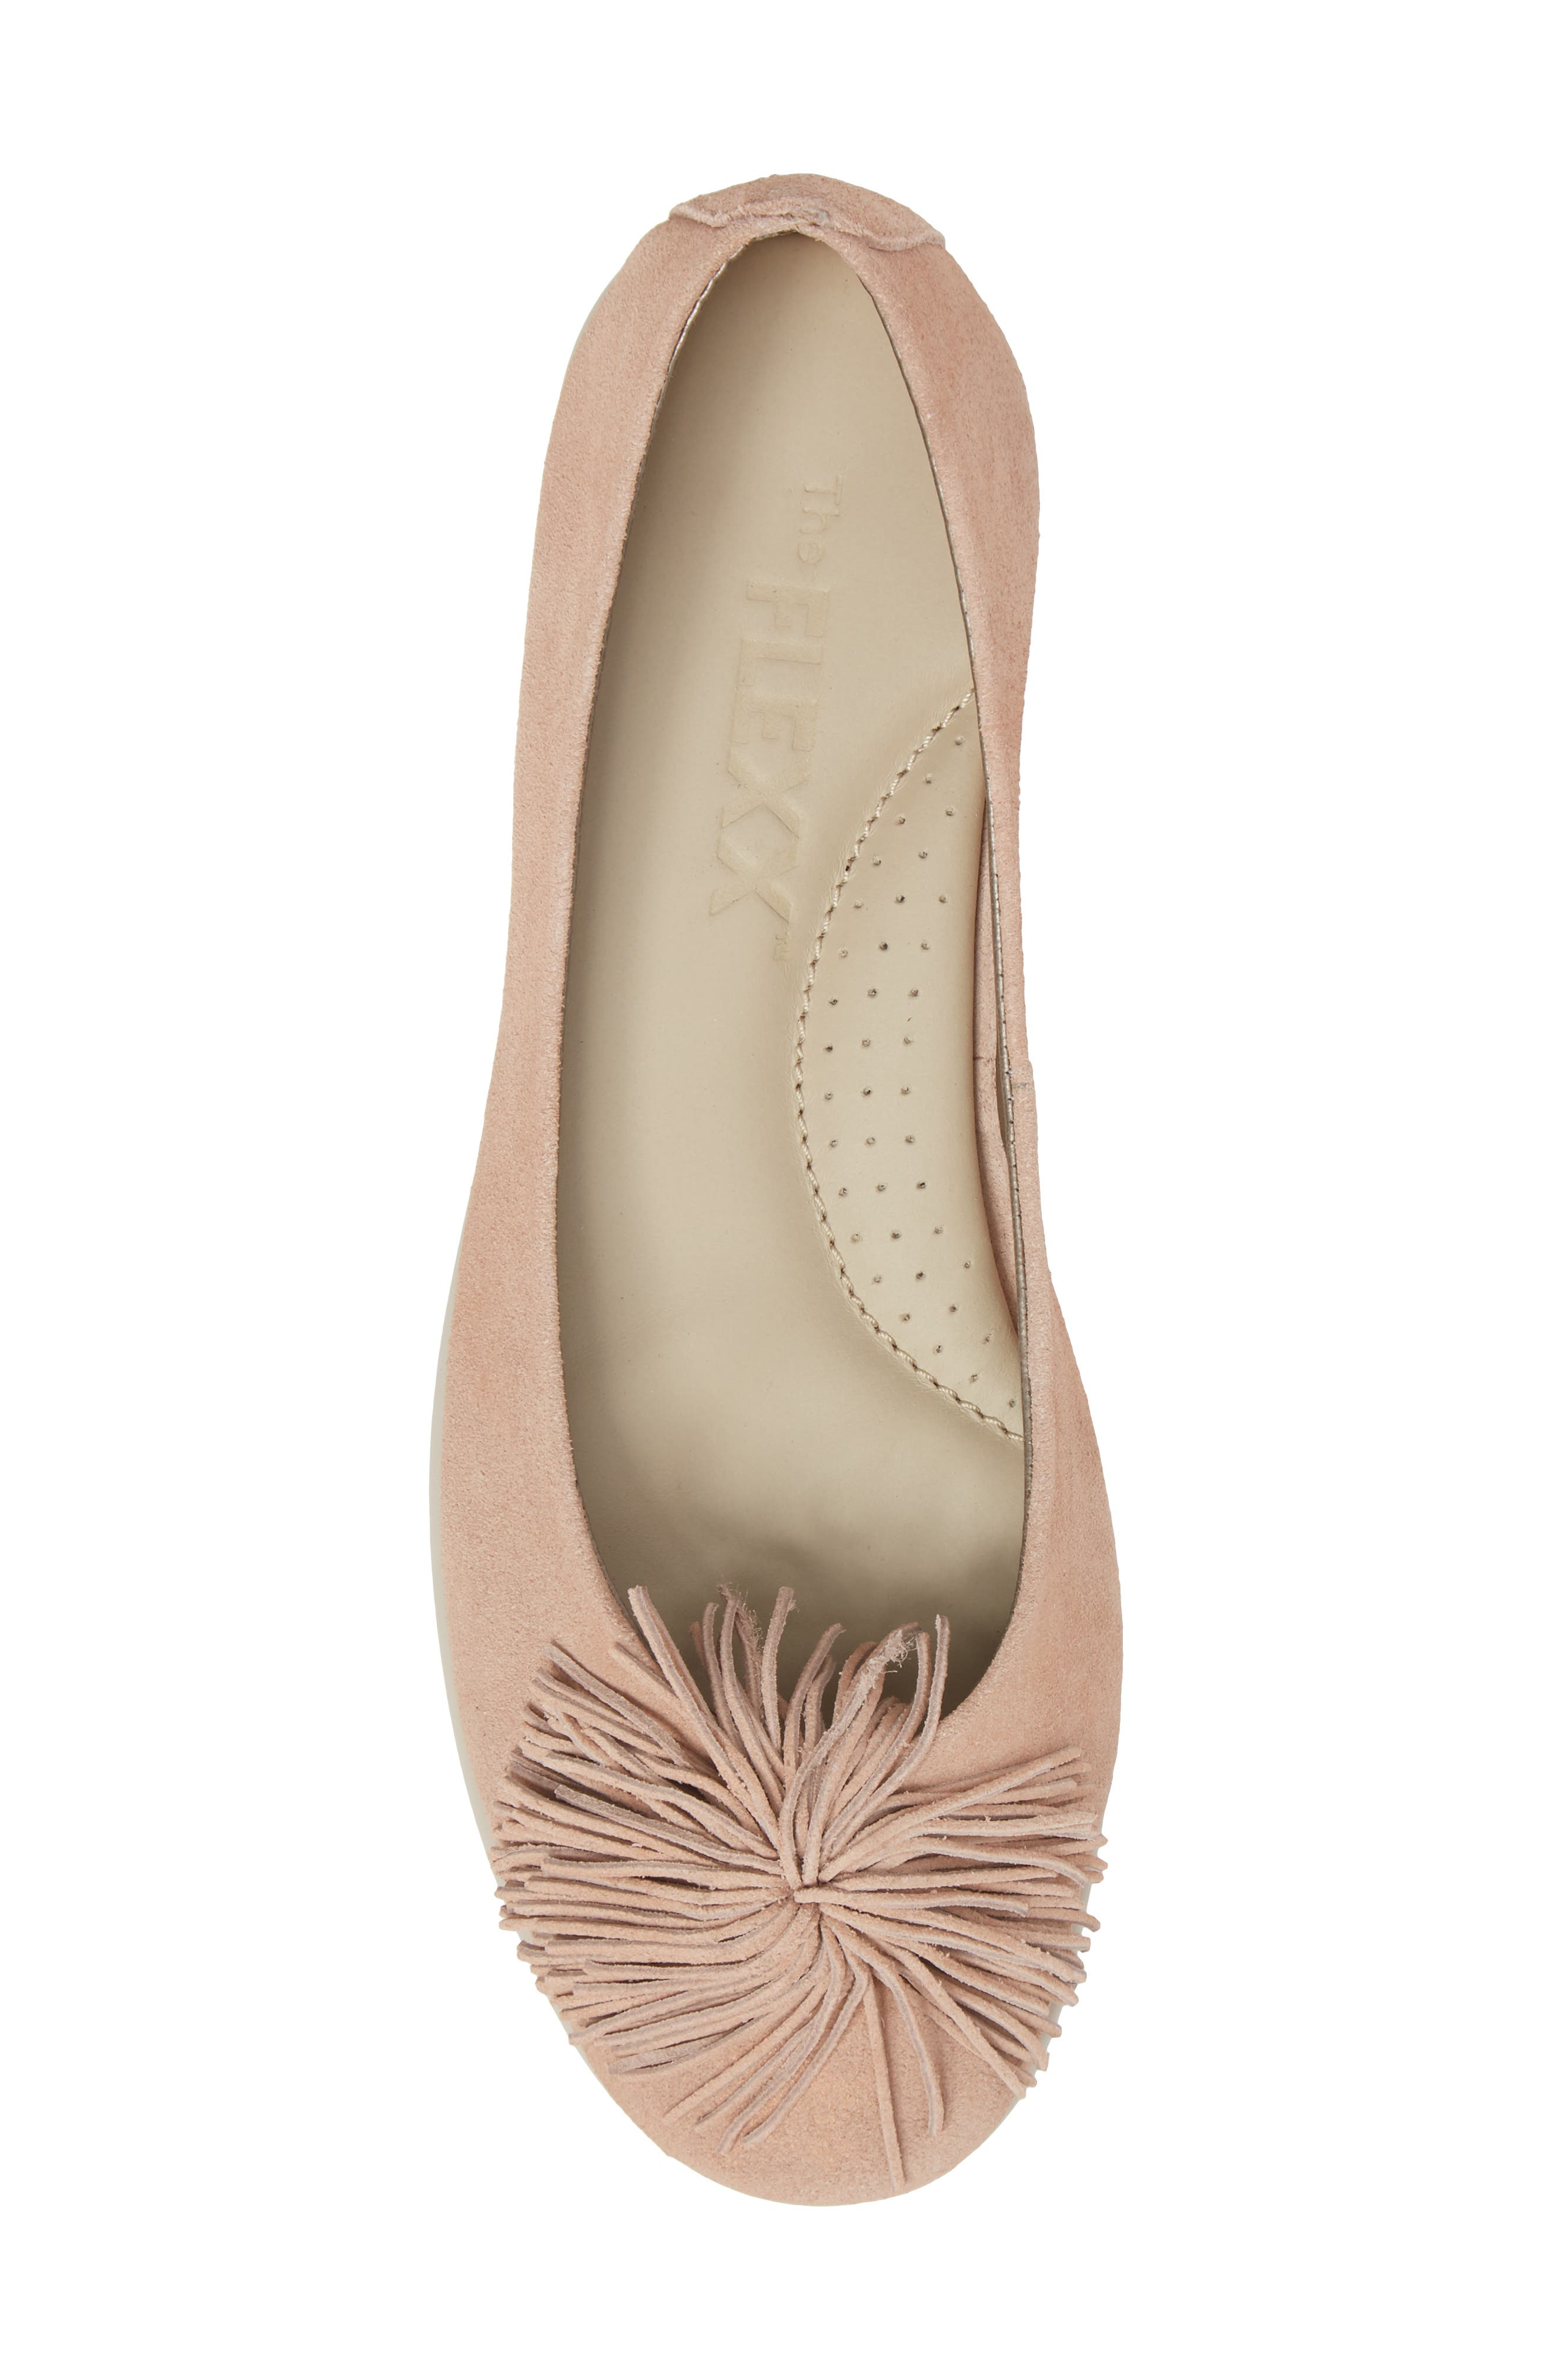 THE FLEXX,                             Pompom Flat,                             Alternate thumbnail 5, color,                             ROSE GOLD LEATHER